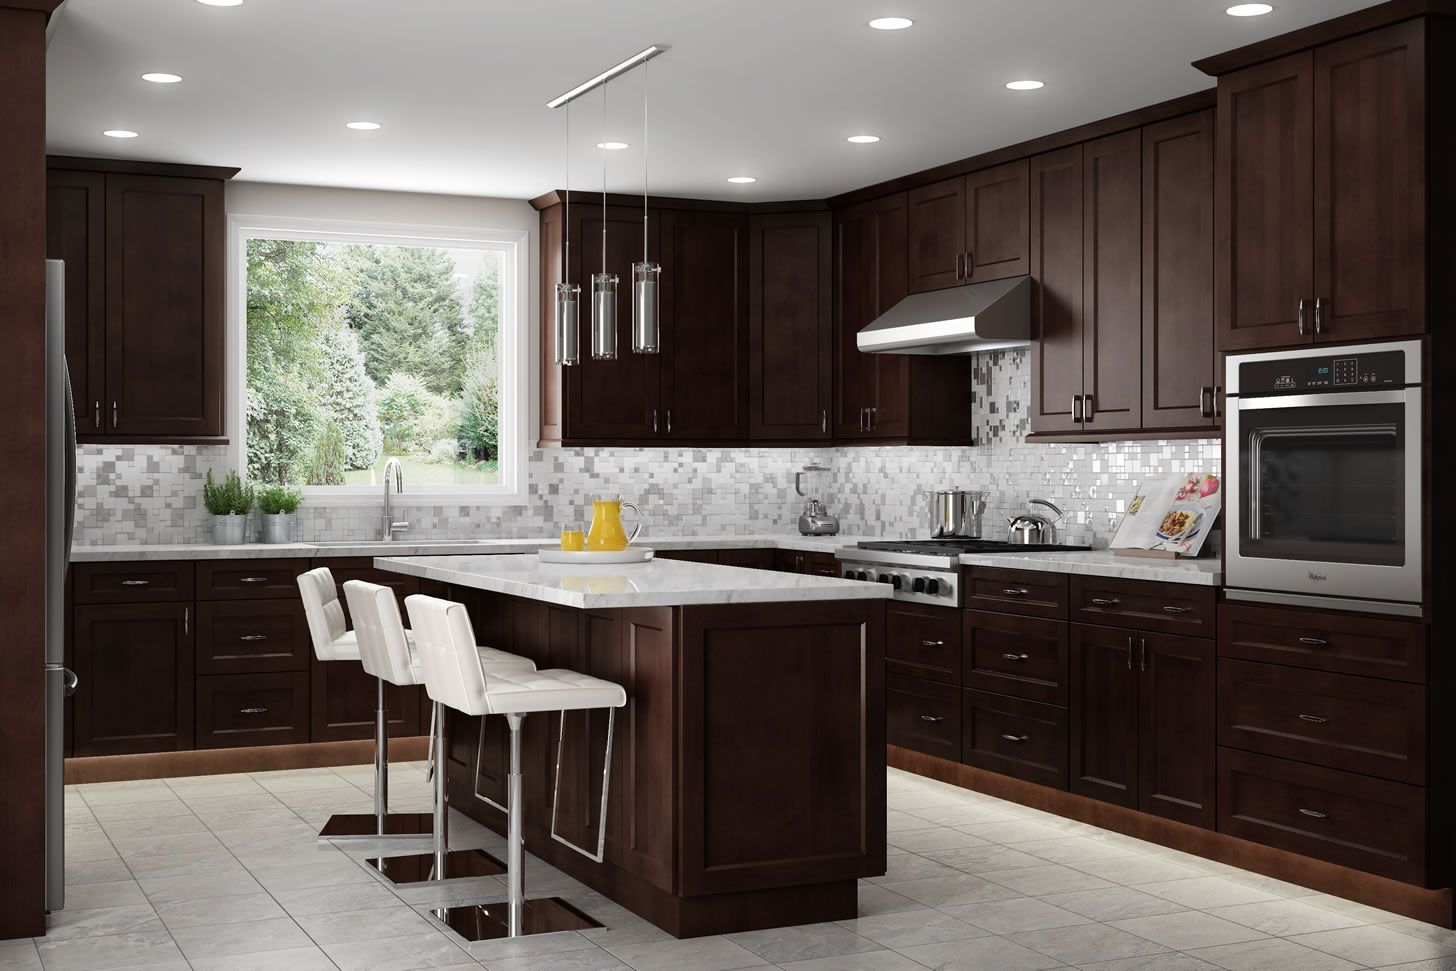 Gorgeous Mocha Shaker Cabinets All The Way To The Ceiling Espresso Kitchen Cabinets Brown Kitchen Cabinets Kitchen Cabinet Outlet